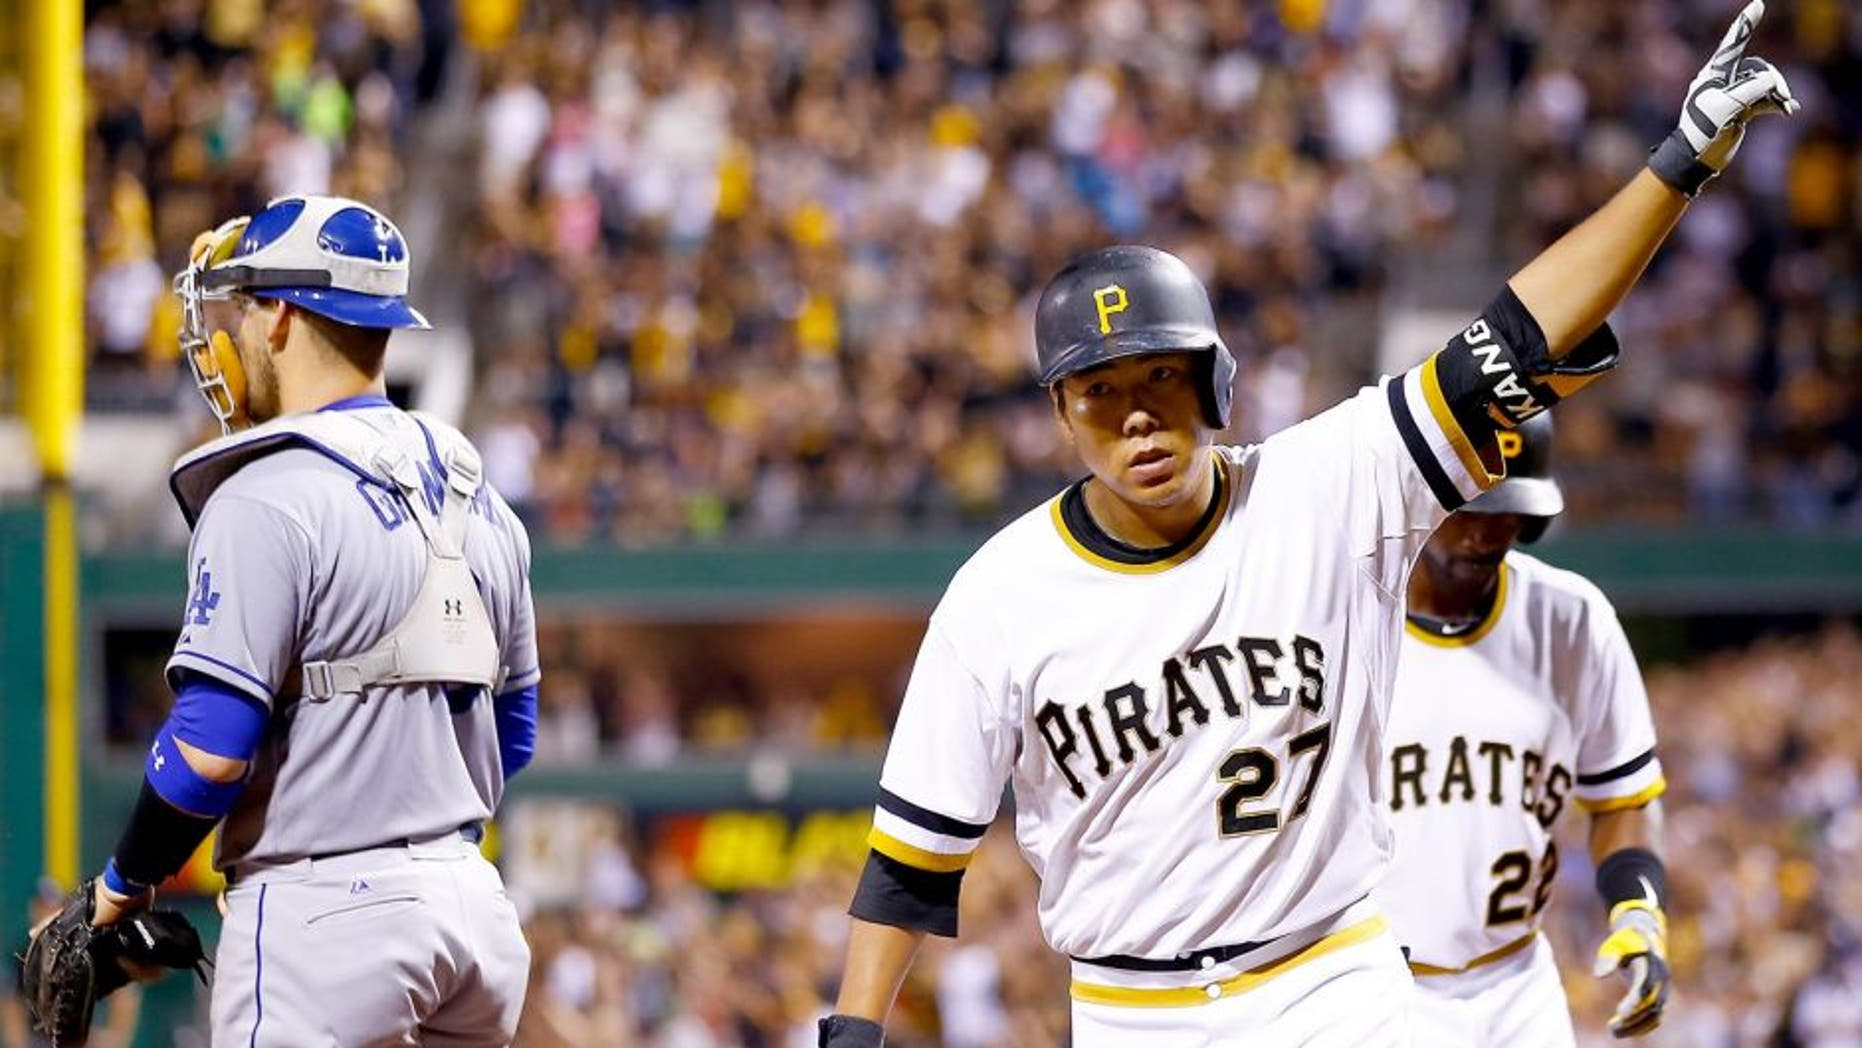 PITTSBURGH, PA - AUGUST 09: Jung Ho Kang #27 of the Pittsburgh Pirates celebrates his three run home run in the 7th inning against the Los Angeles Dodgers during the game at PNC Park on August 9, 2015 in Pittsburgh, Pennsylvania. (Photo by Jared Wickerham/Getty Images)